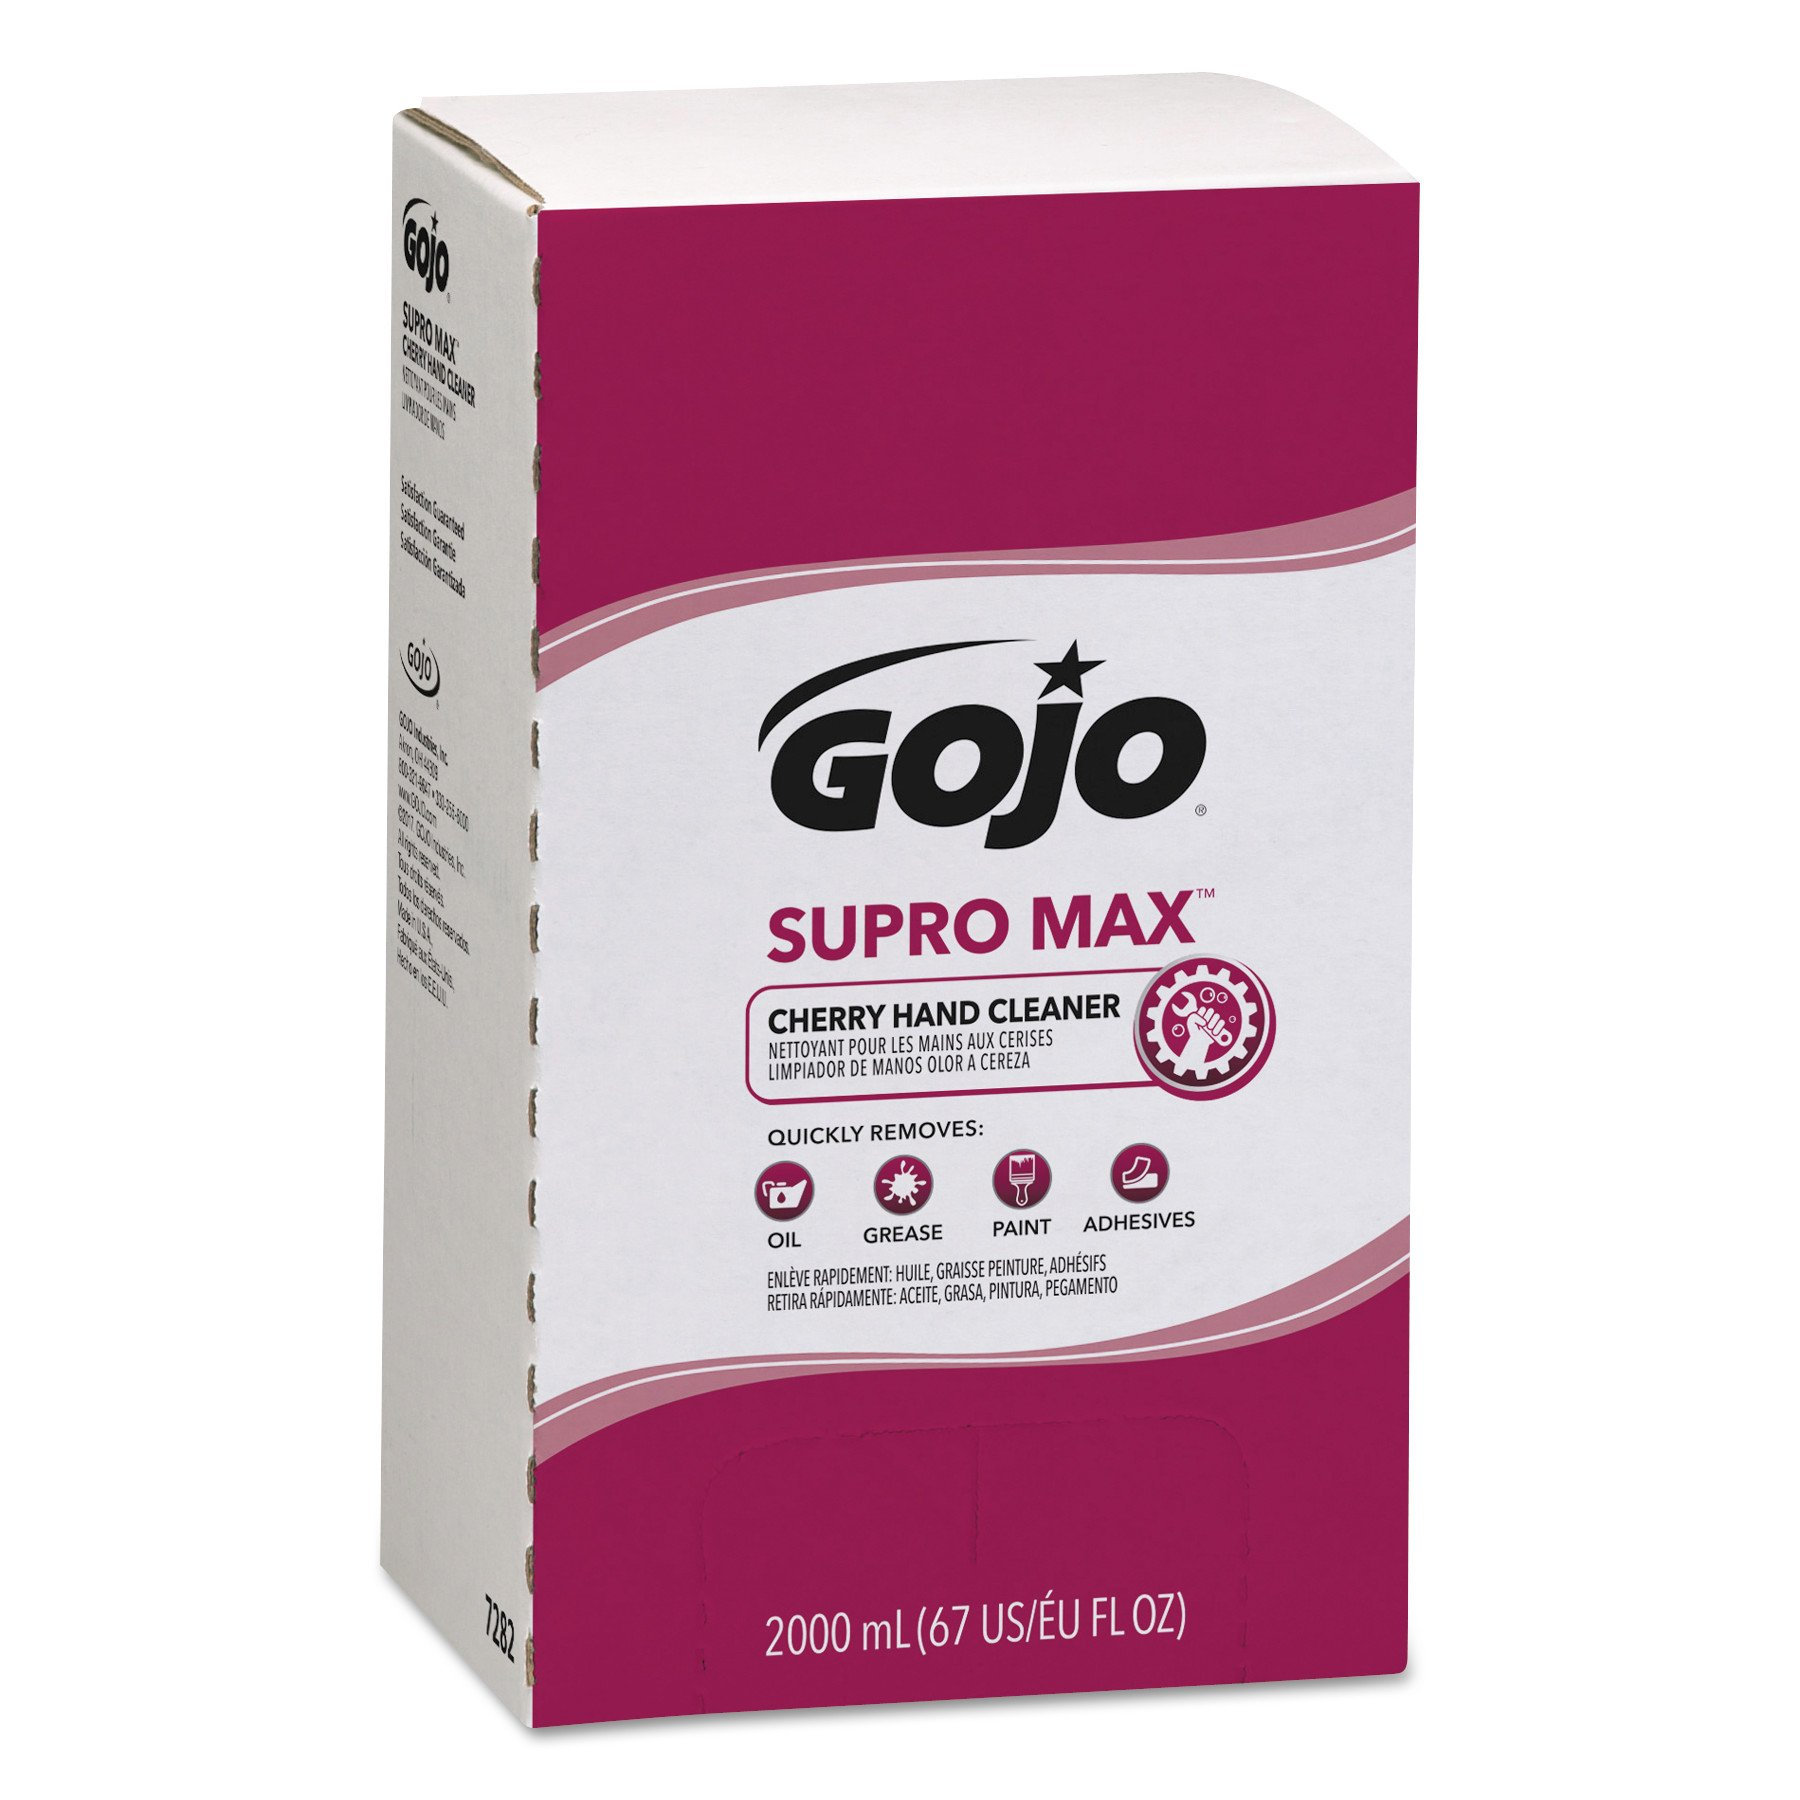 GOJO 7282-04 2000 mL Supro Max Cherry Hand Cleaner, PRO TDX 2000 Refill, (Case of 4),Compatible with Dispenser #7200-01